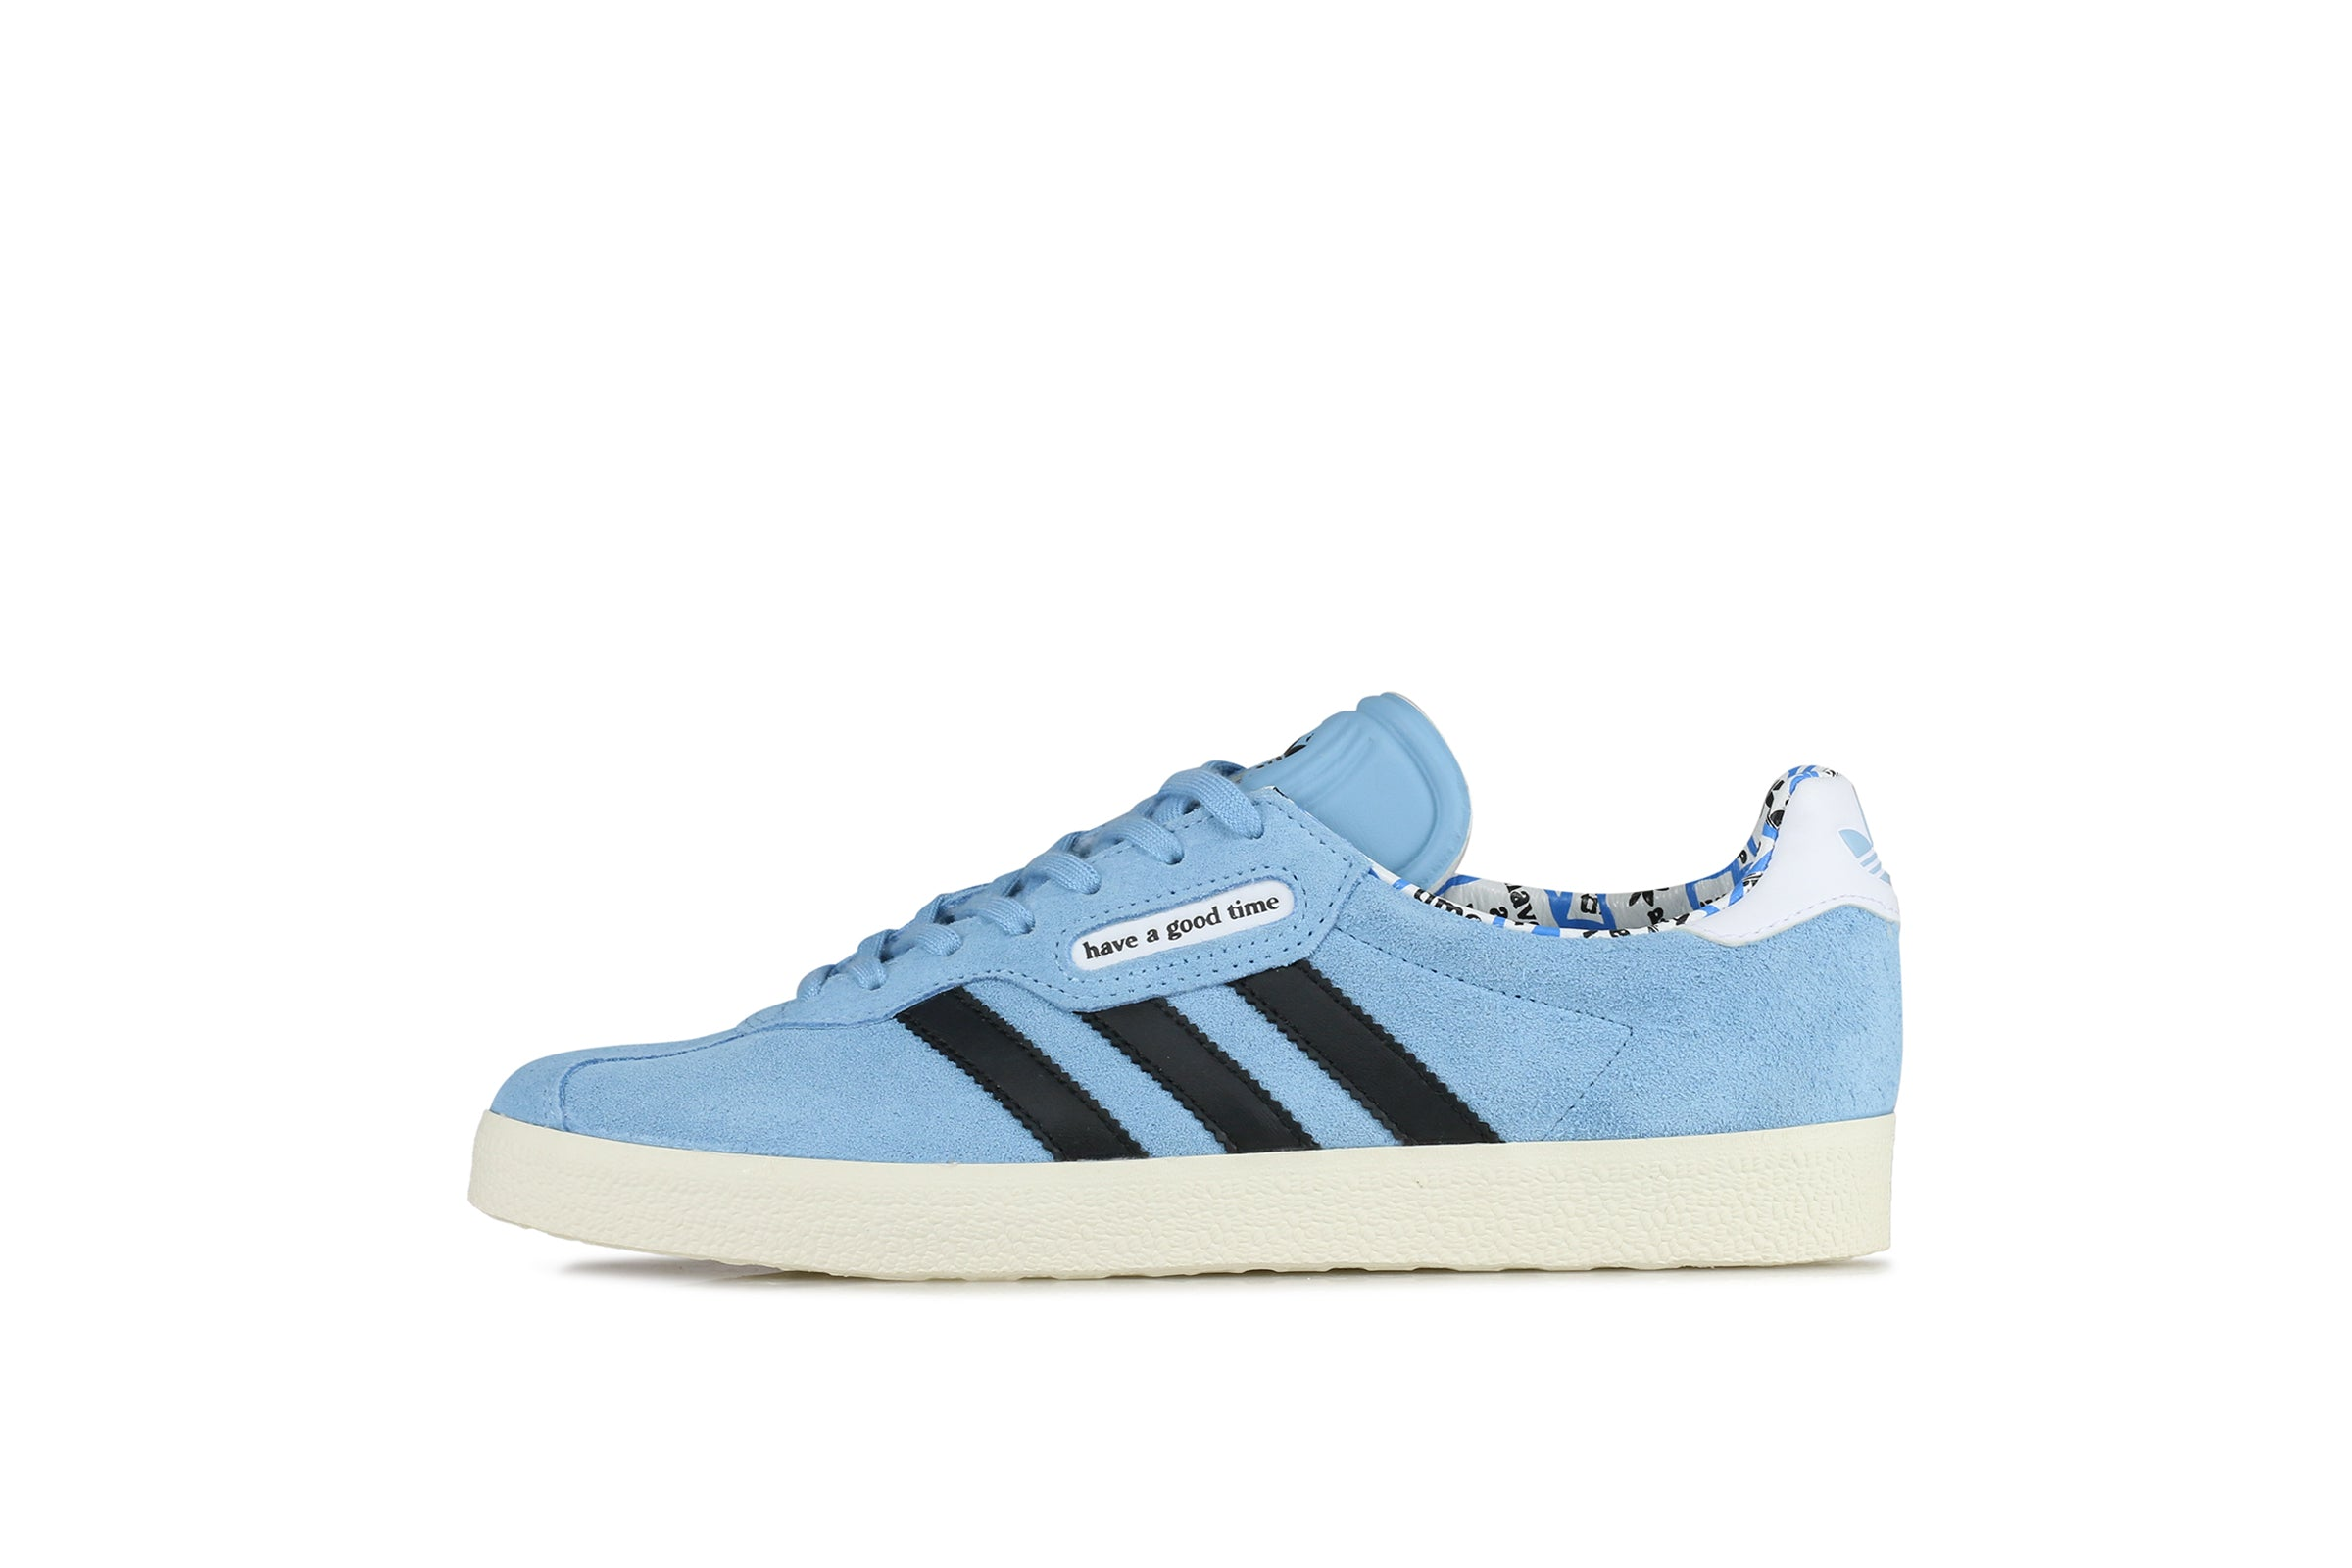 1e8d1e4dc6e46 Adidas Gazelle Super x Have A Good Time